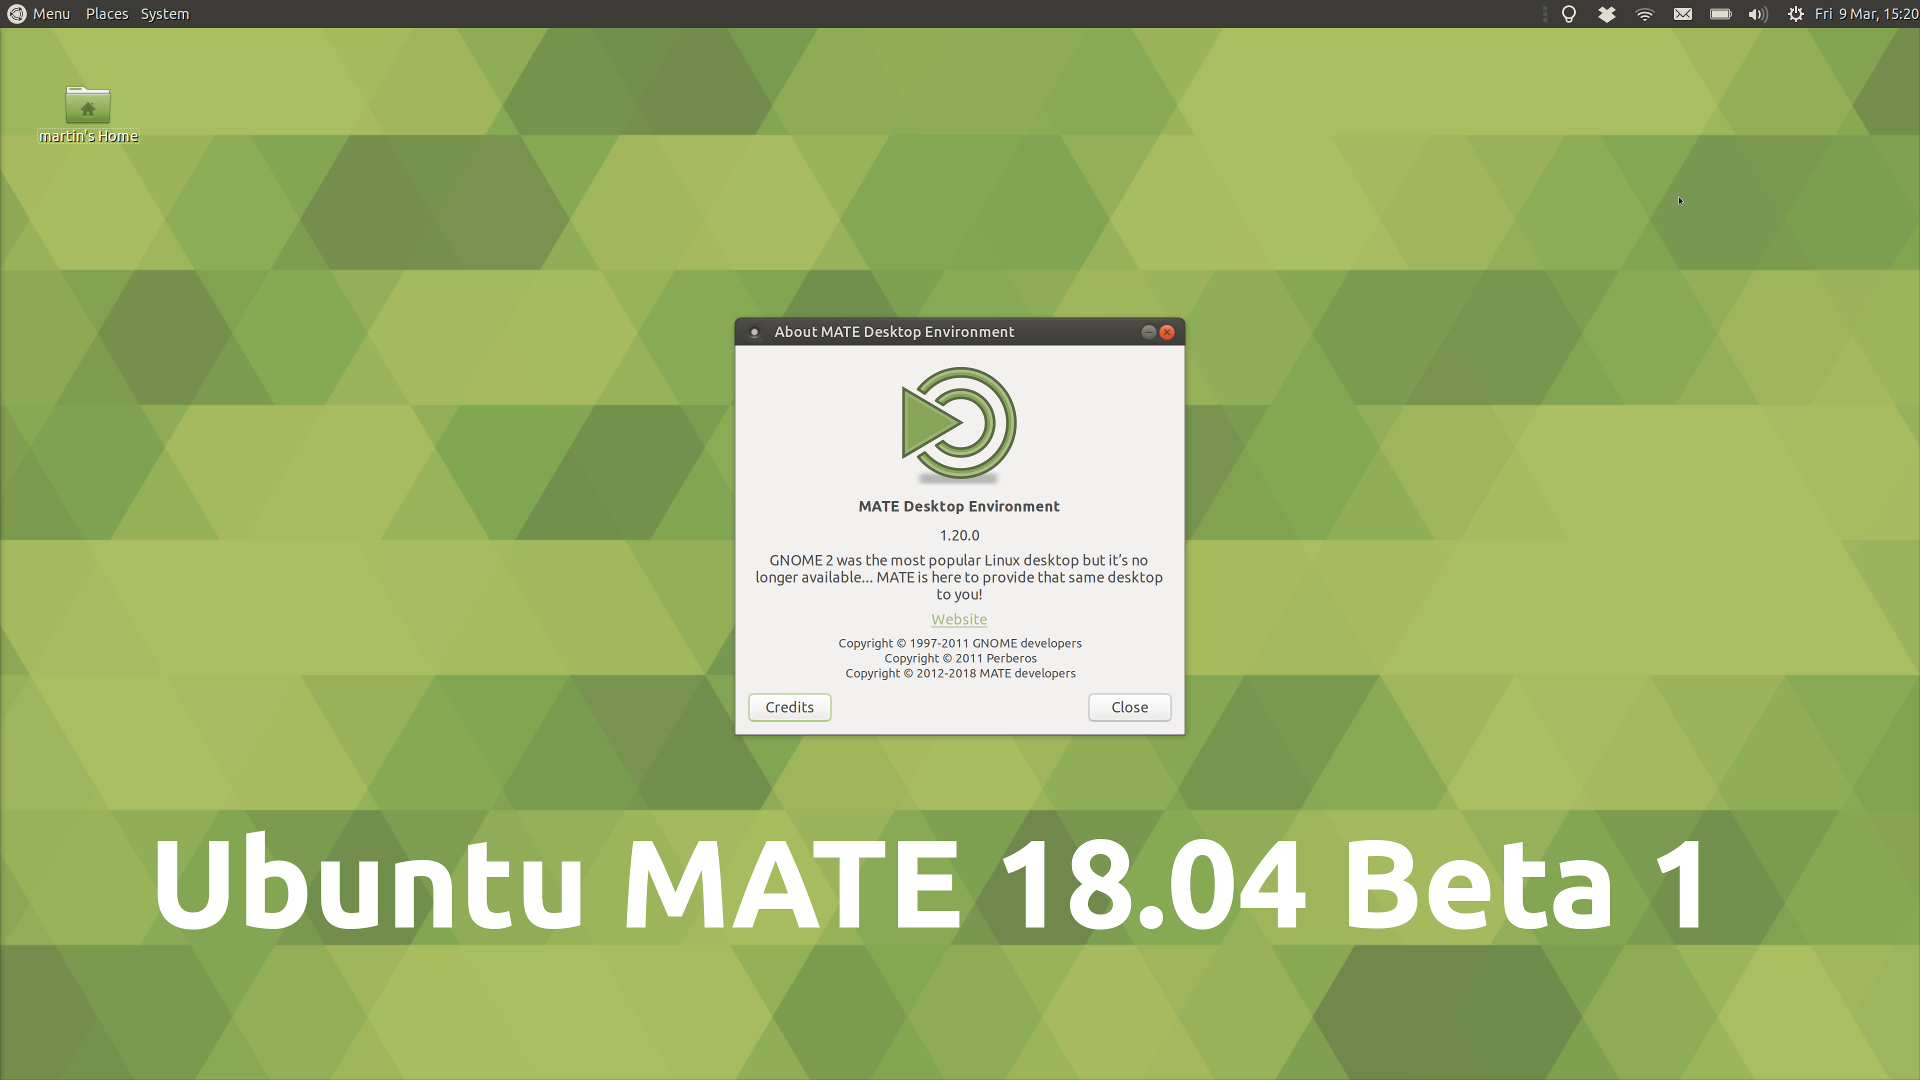 Ubuntu MATE 18.04 Beta 1